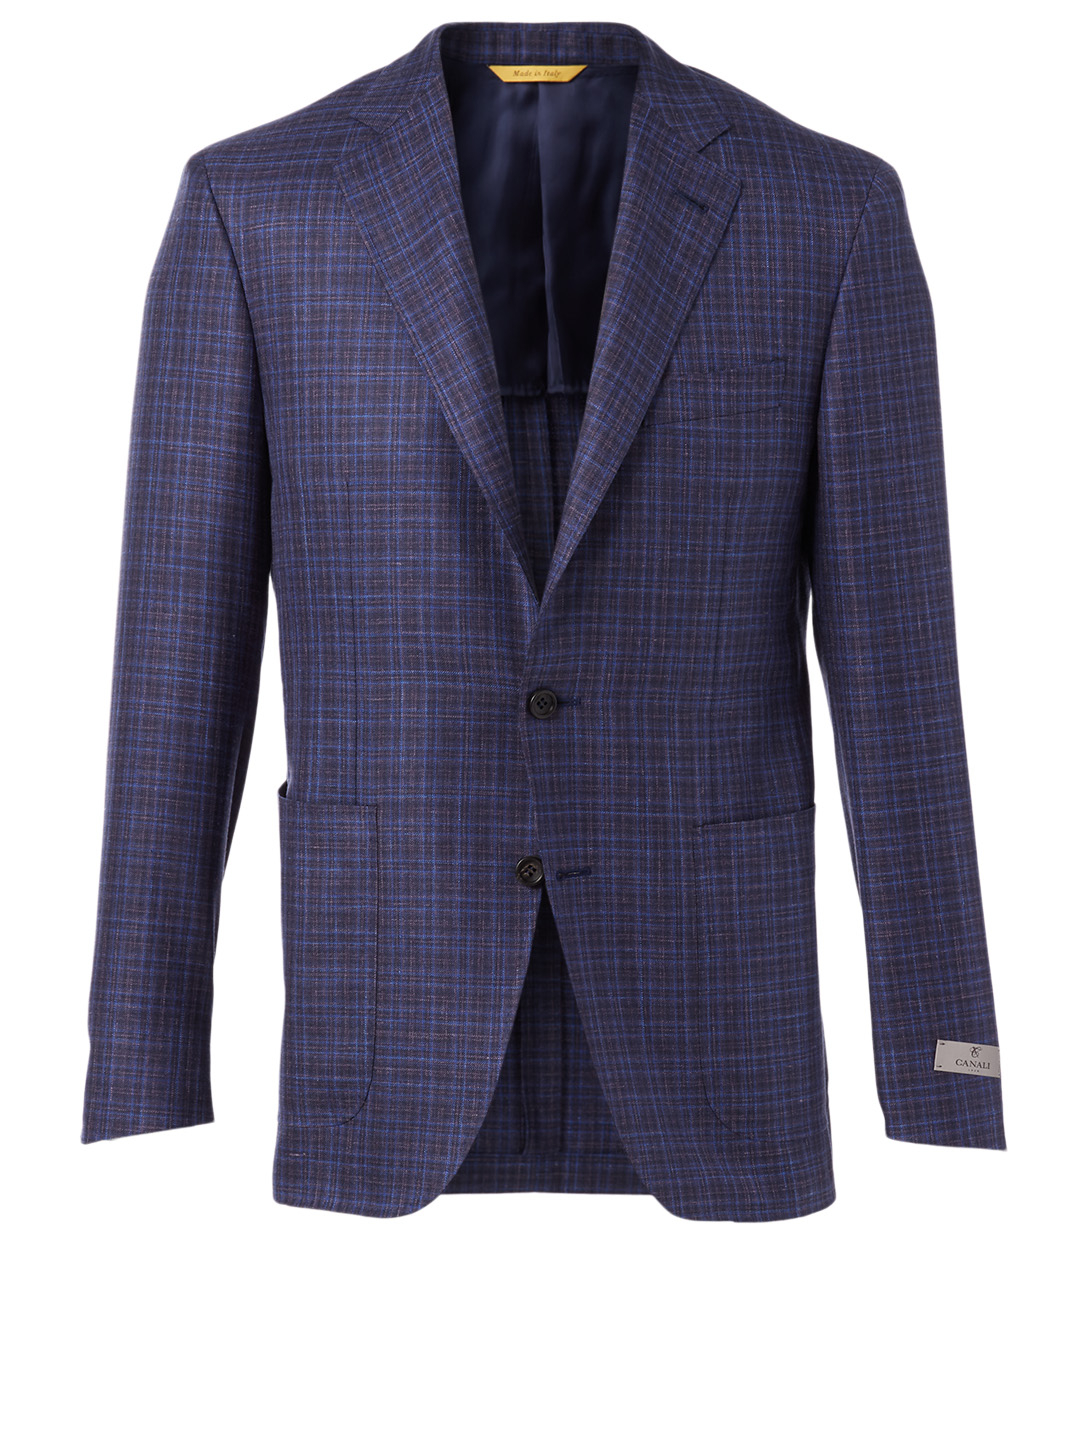 CANALI Textured Wool Silk And Linen Jacket Men's Purple